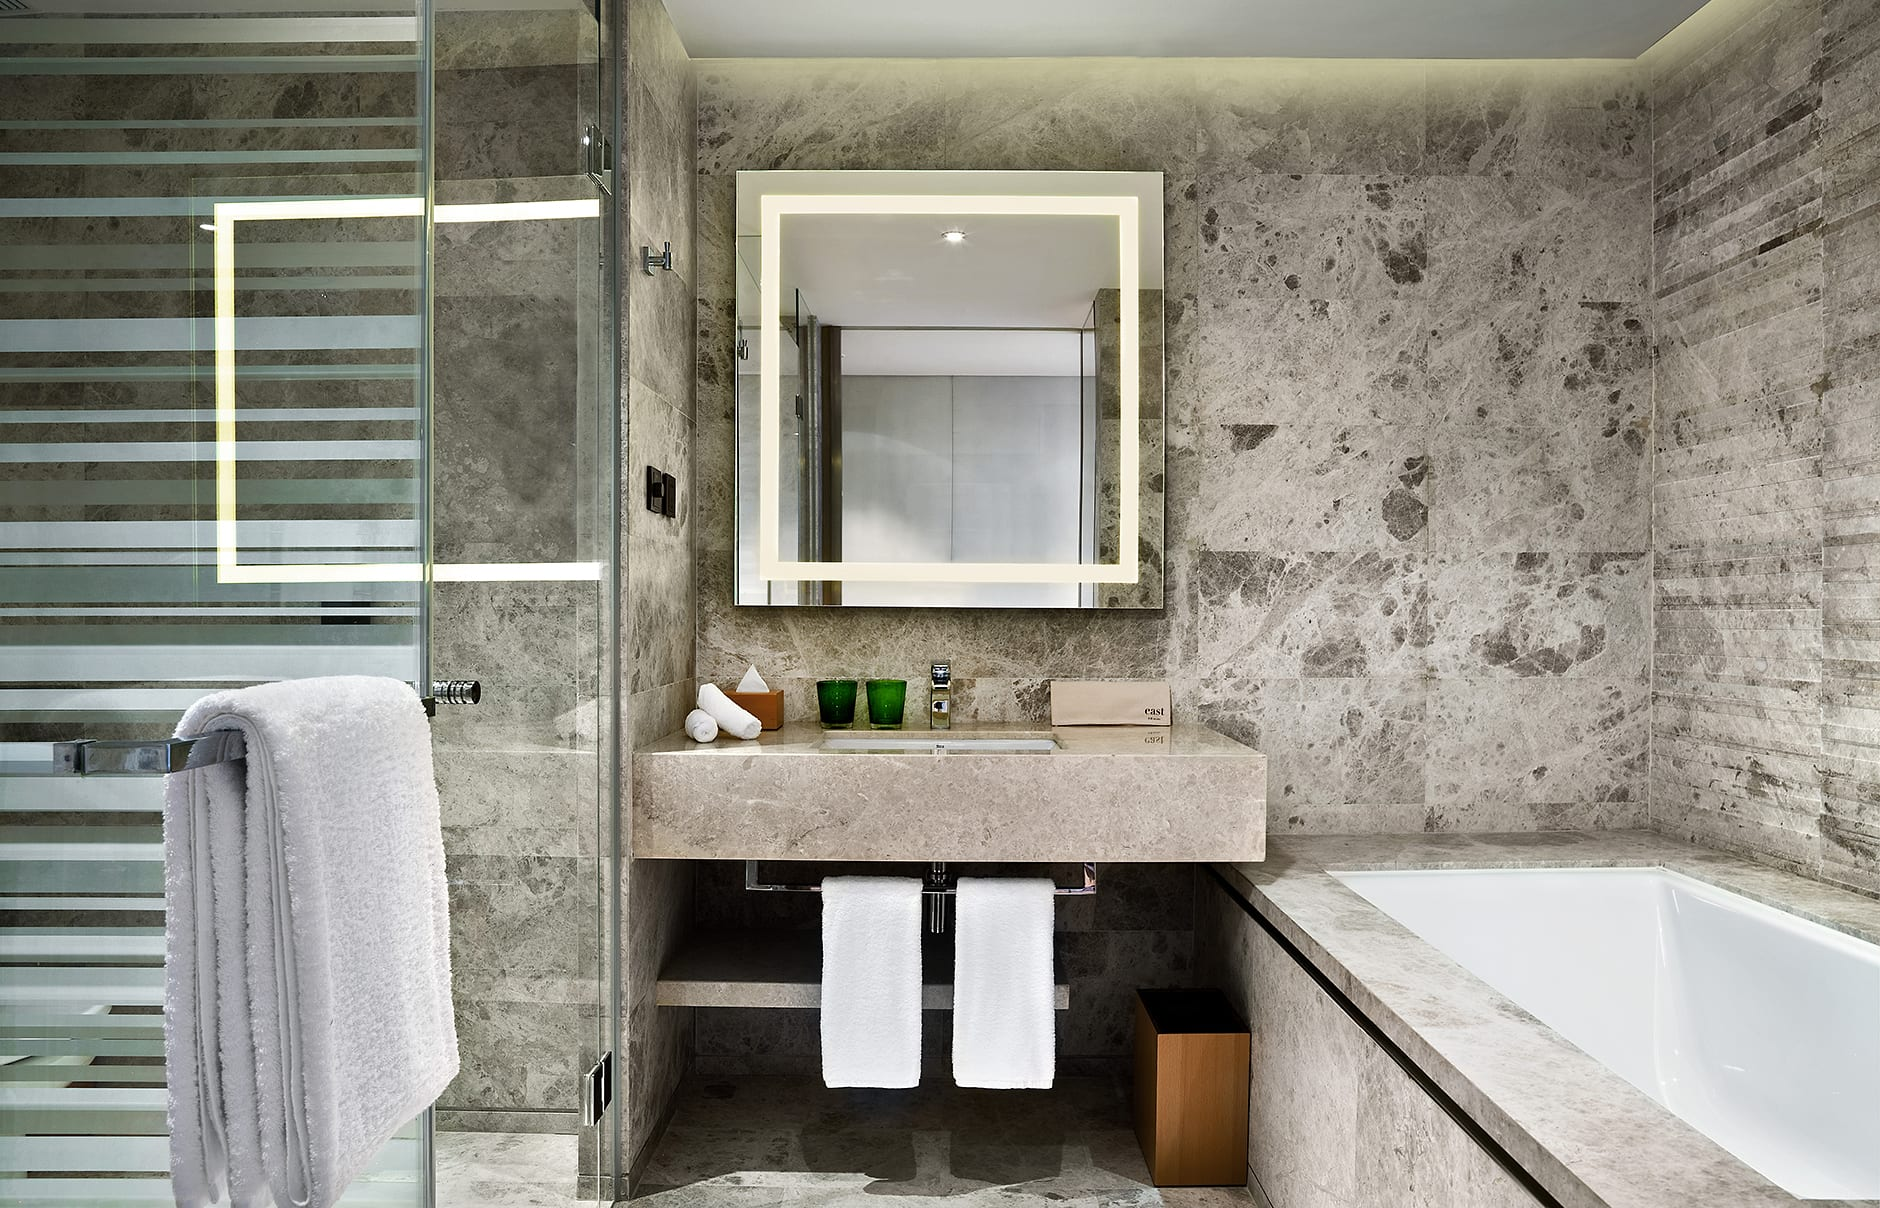 Bathroom. EAST Beijing, China. Hotel Review by TravelPlusStyle. Photo © Swire Hotels